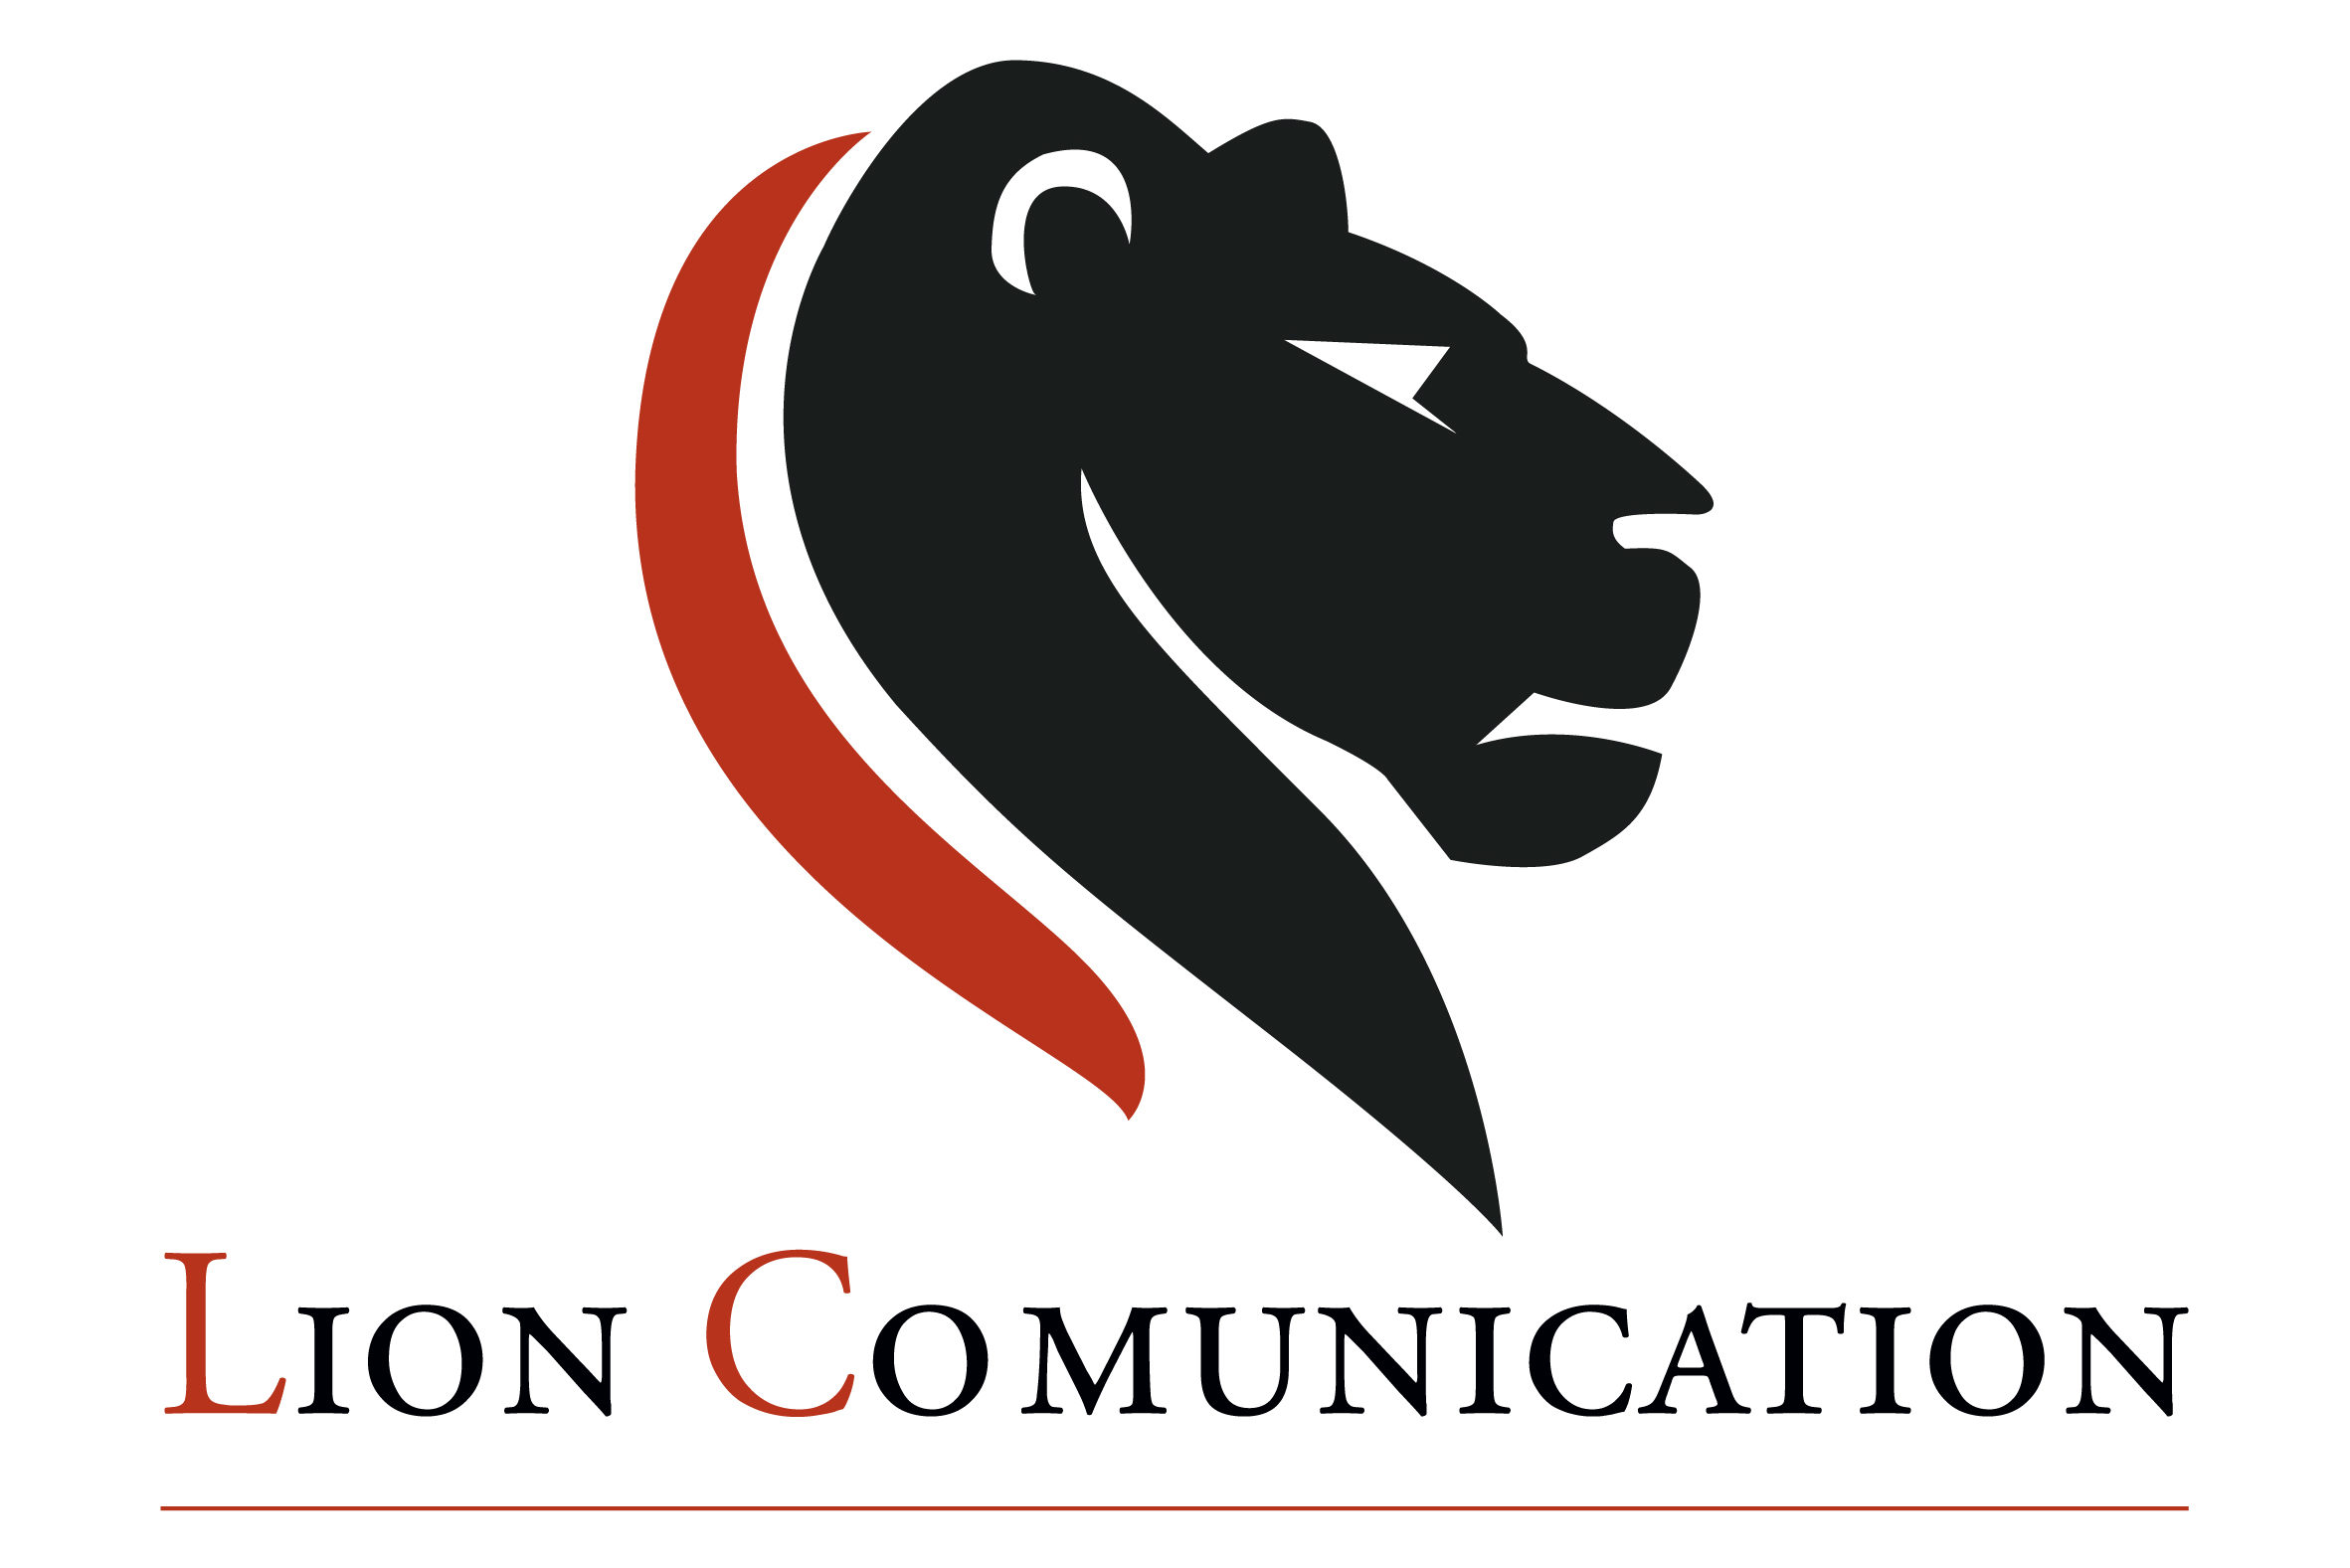 Lion Comunication S.r.l.s.